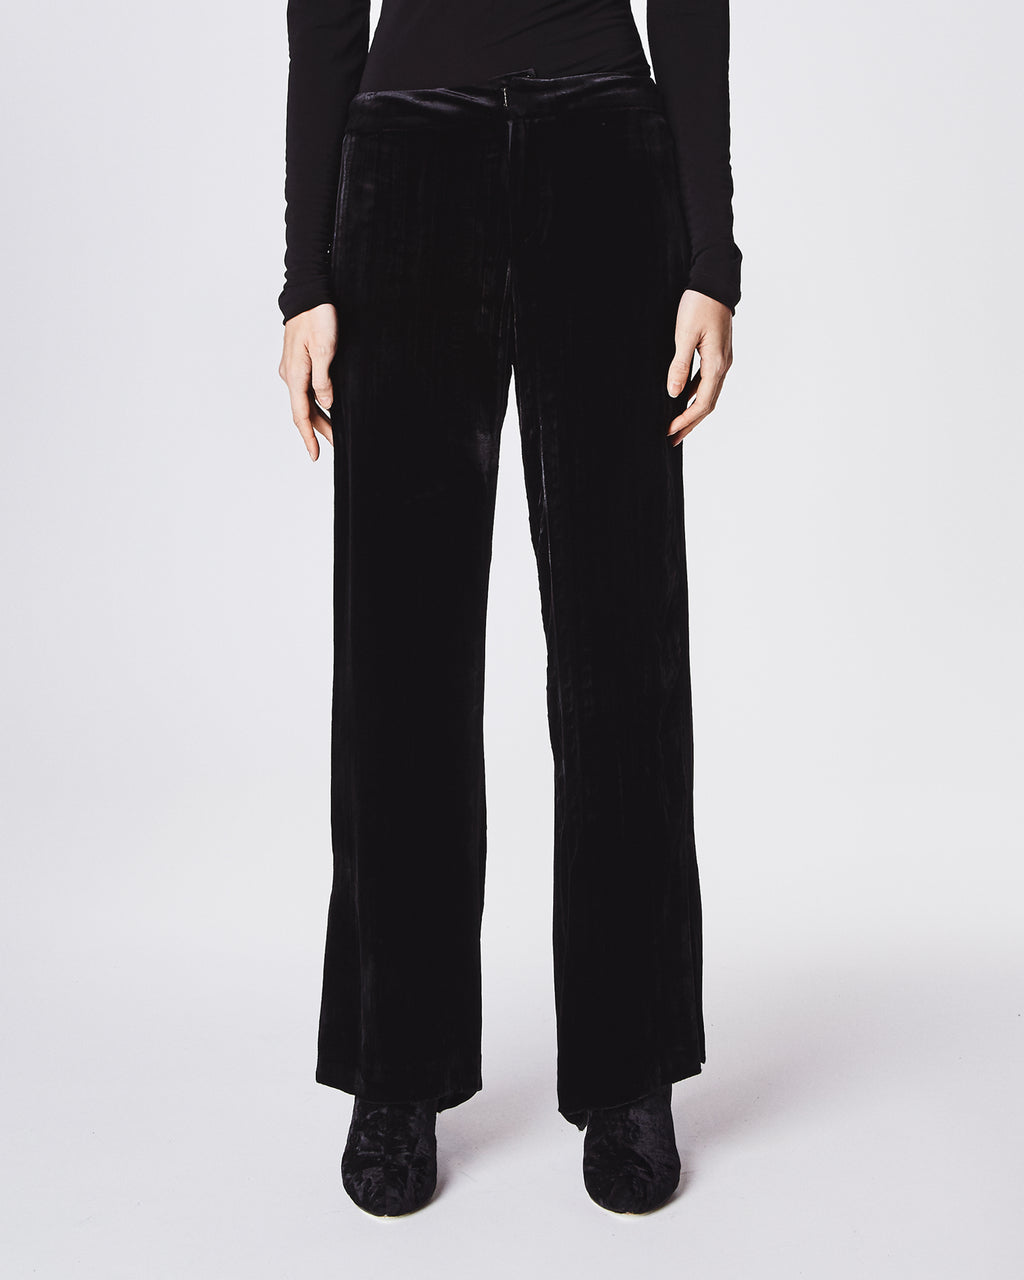 BM10197 - CRINKLED VELVET PANT - bottoms - pants - Slight cropped, these high waisted pants are made in a soft velvet and feature side slits at the ankles. Unlined. Final Sale